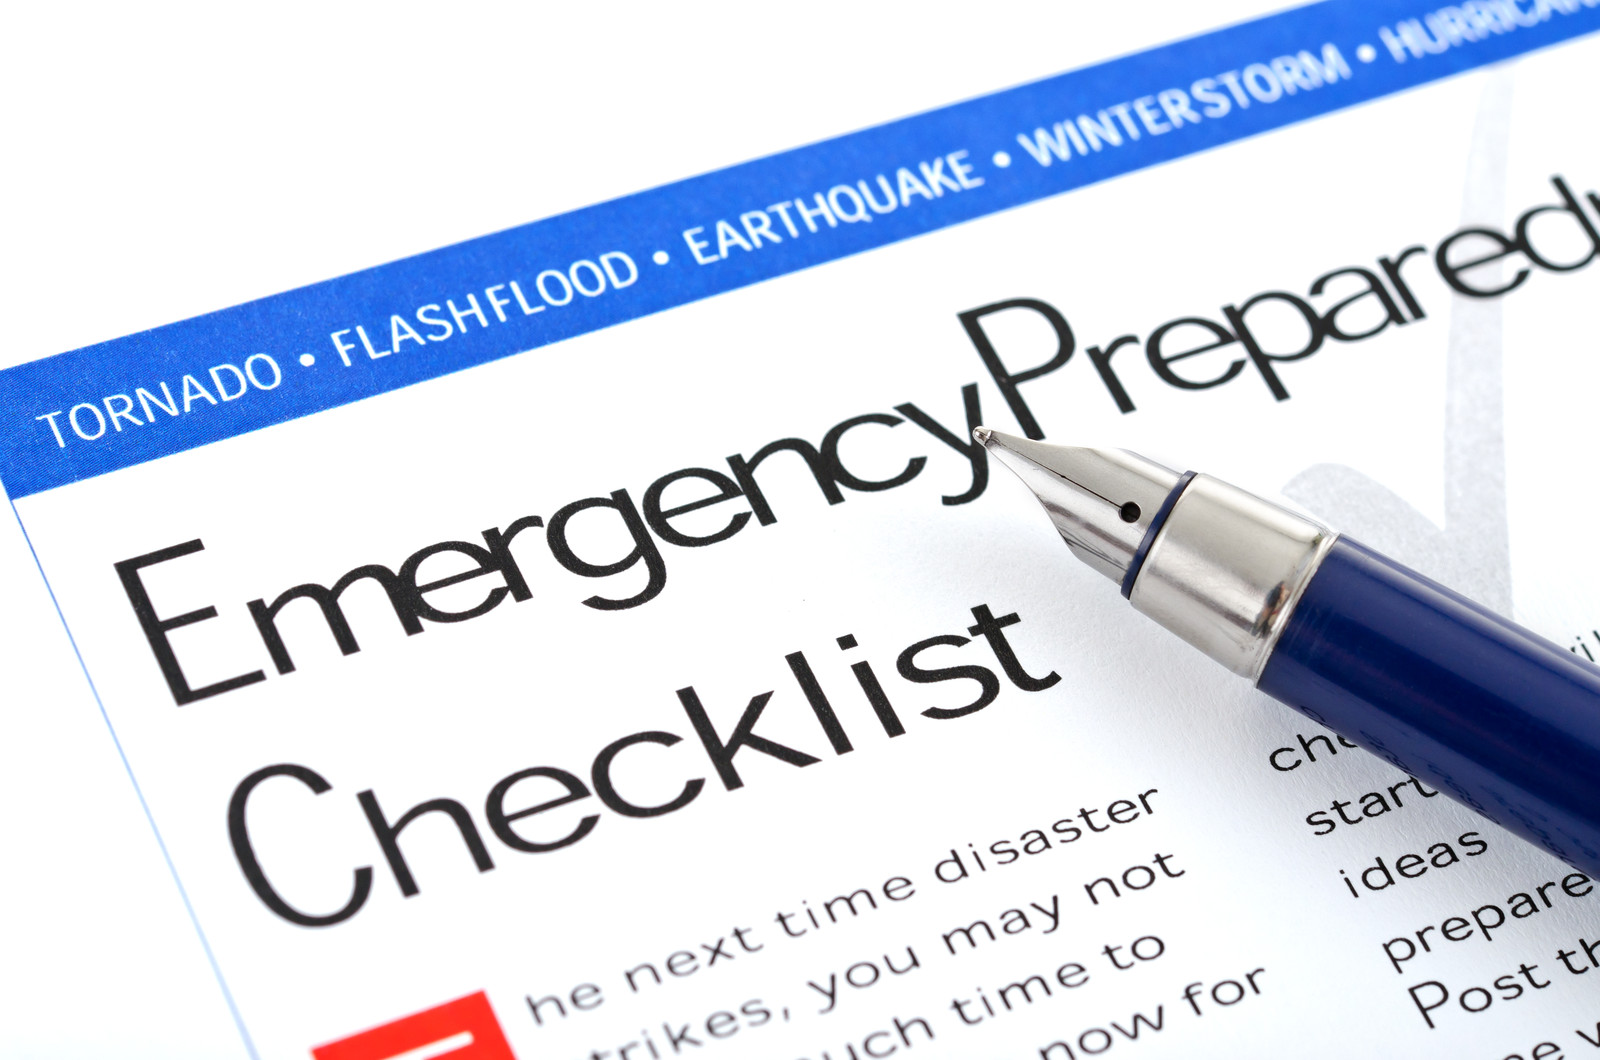 preparedness starts with you